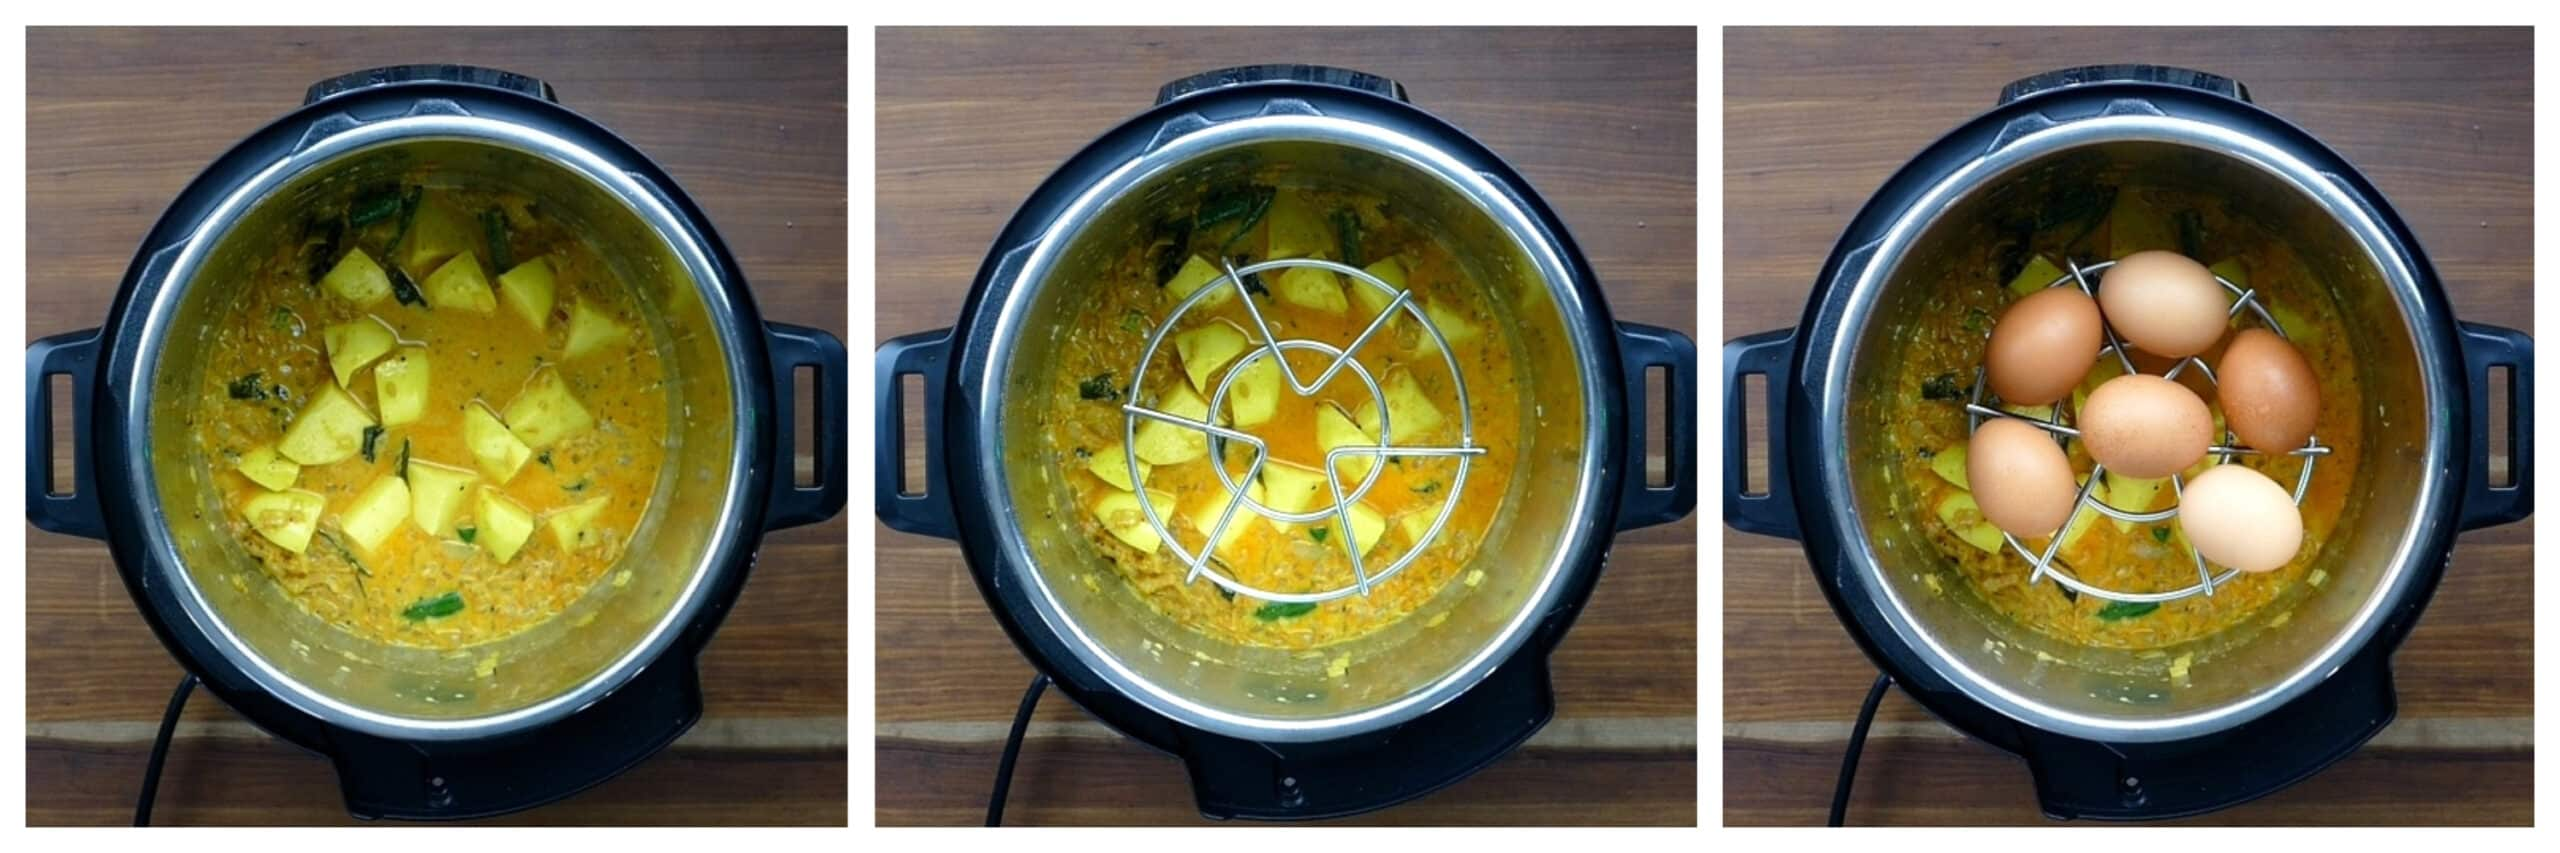 Instant Pot Egg Curry Instructions 4 collage - coconut milk and water added; trivet in curry; 6 brown eggs on trivet